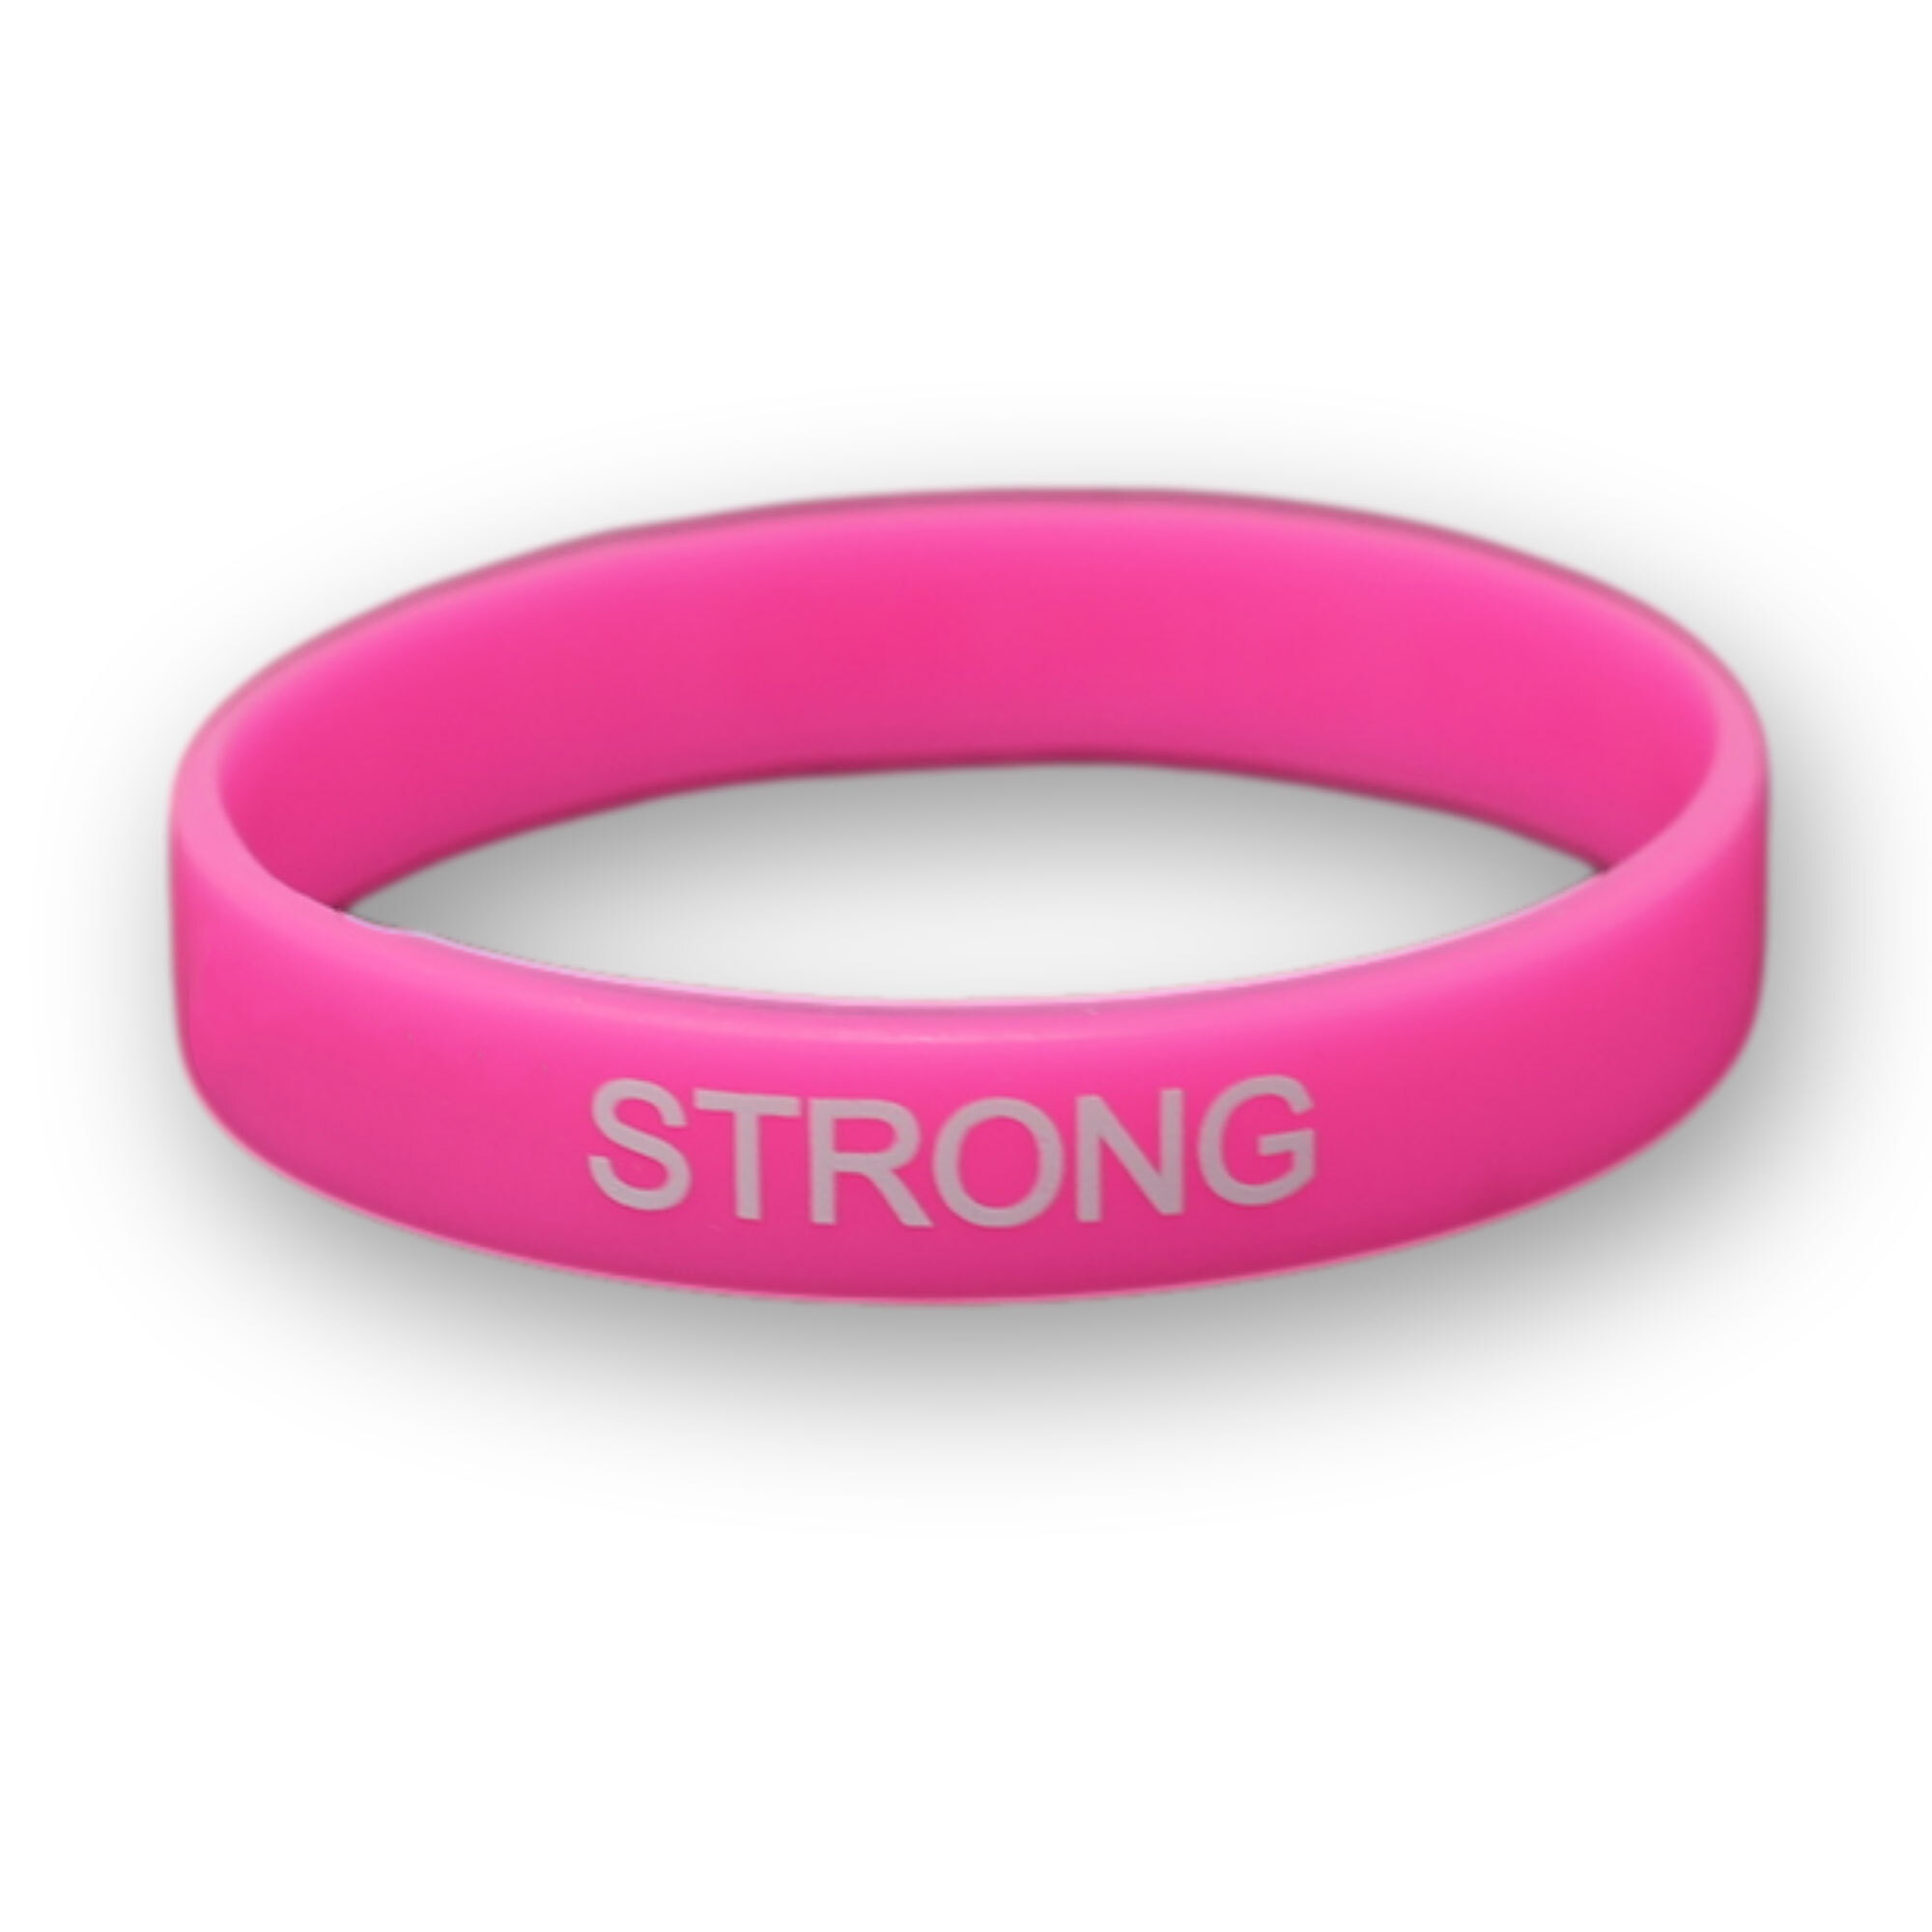 One Of Our Brothers Was Diagnosed With Stage 4 Small Cell Carcinoma As A Way To Show Support We Quickly Ordered White Bracelets That